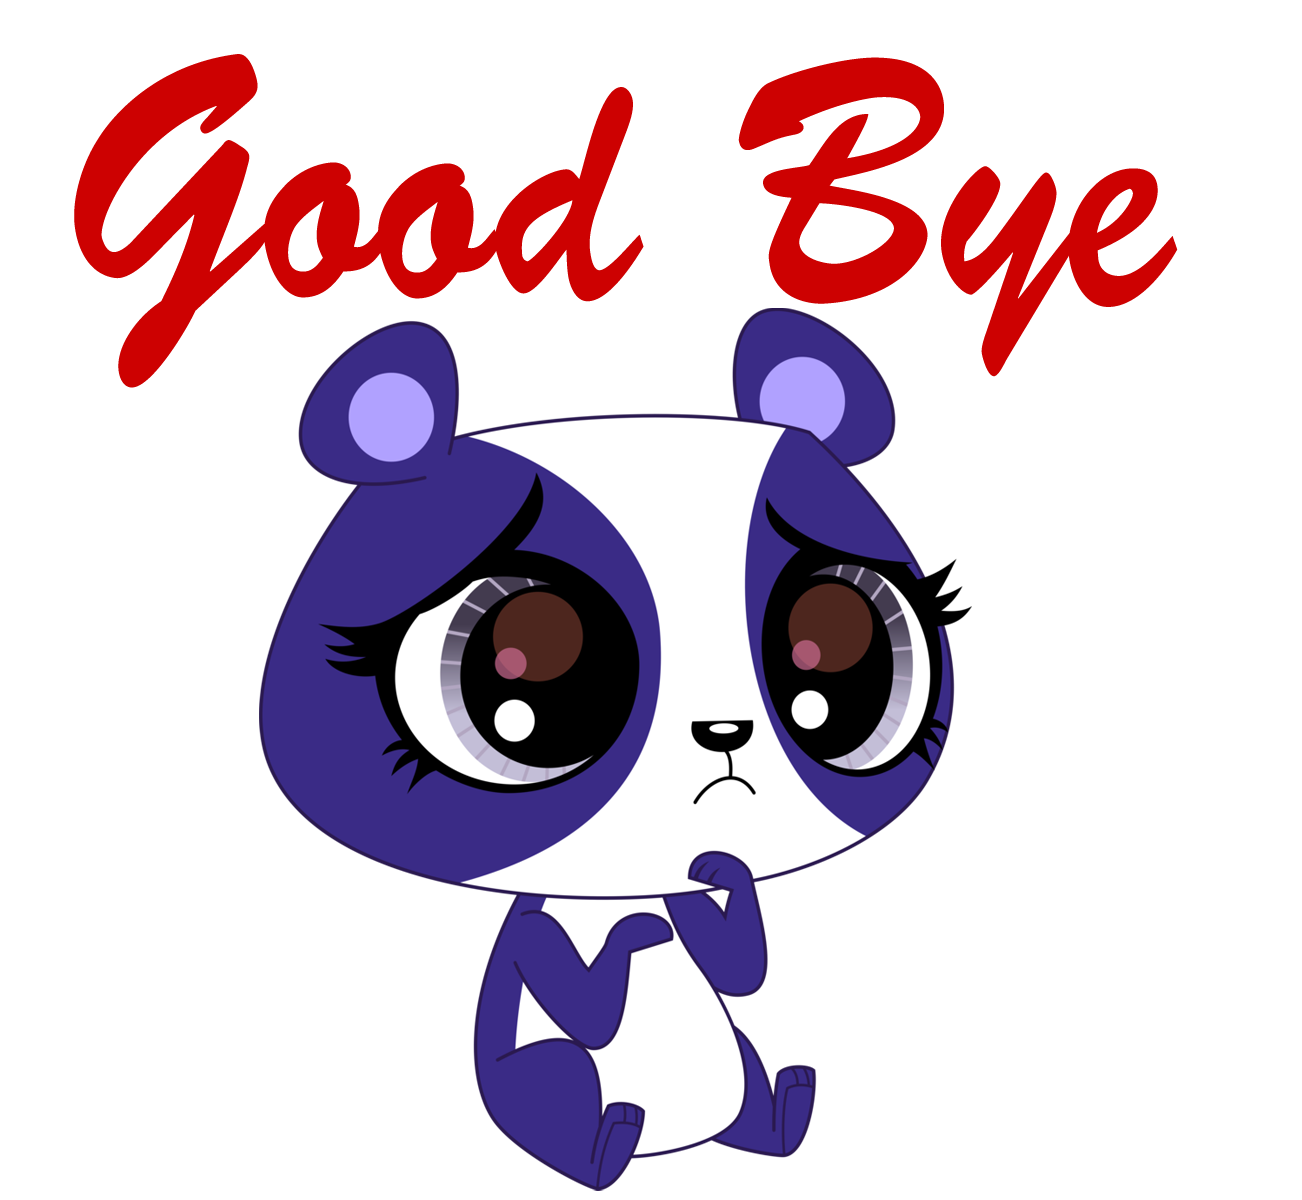 Good Bye PNG Picture.